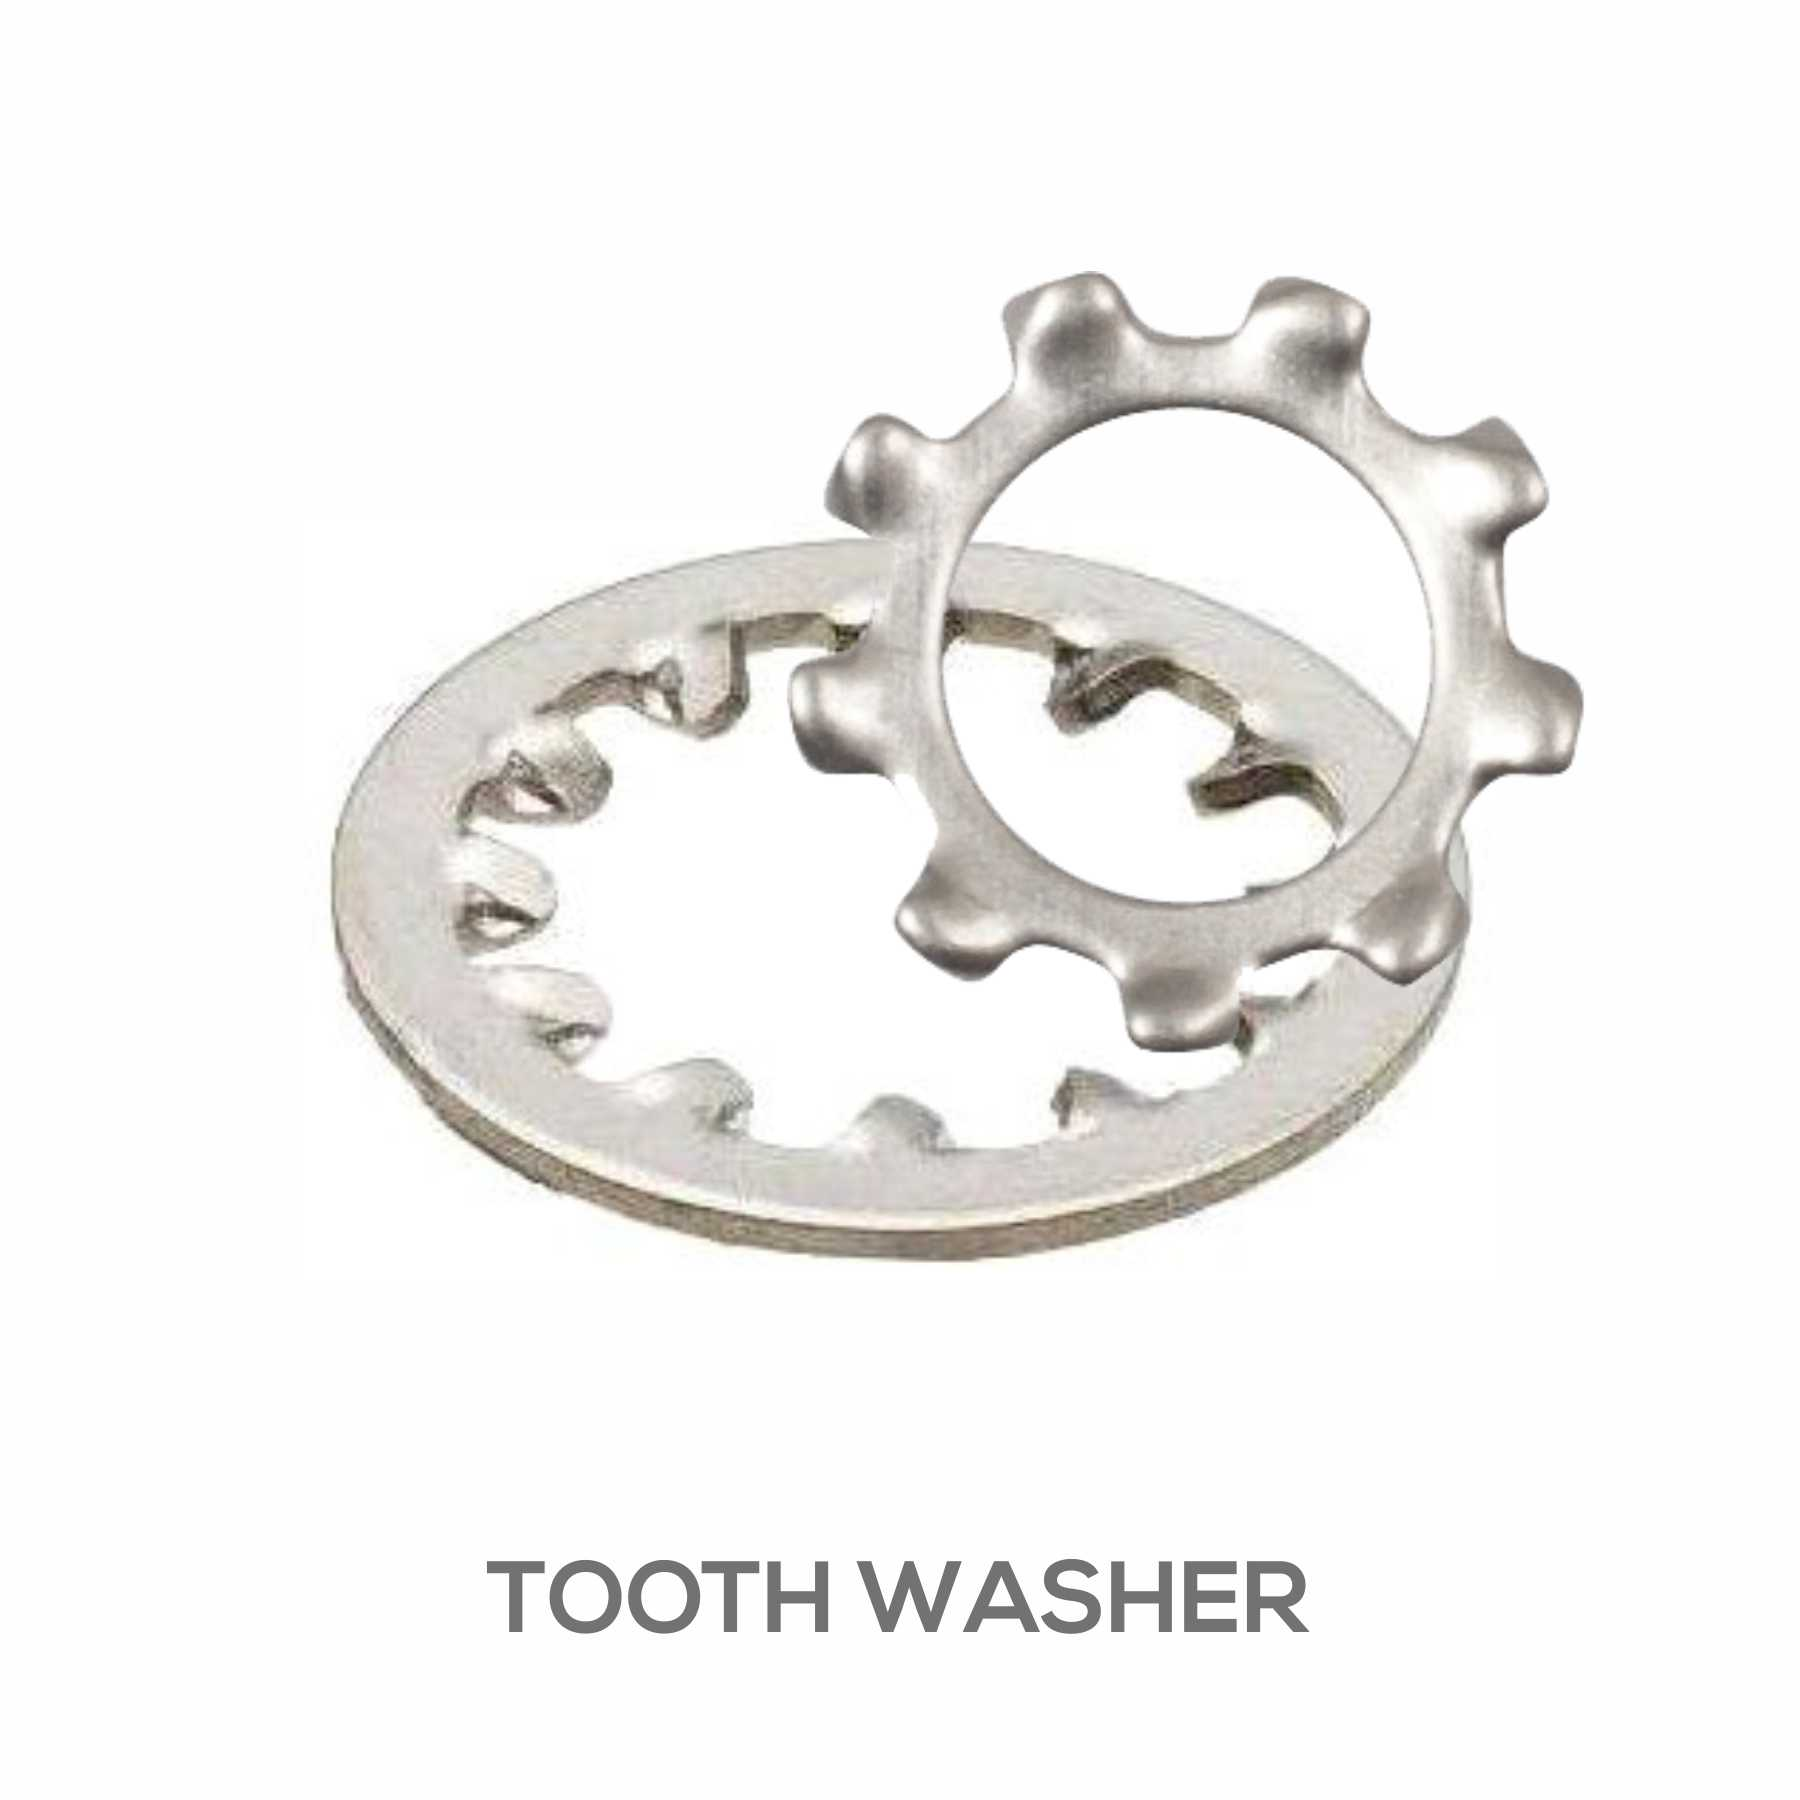 9-TOOTH WASHER